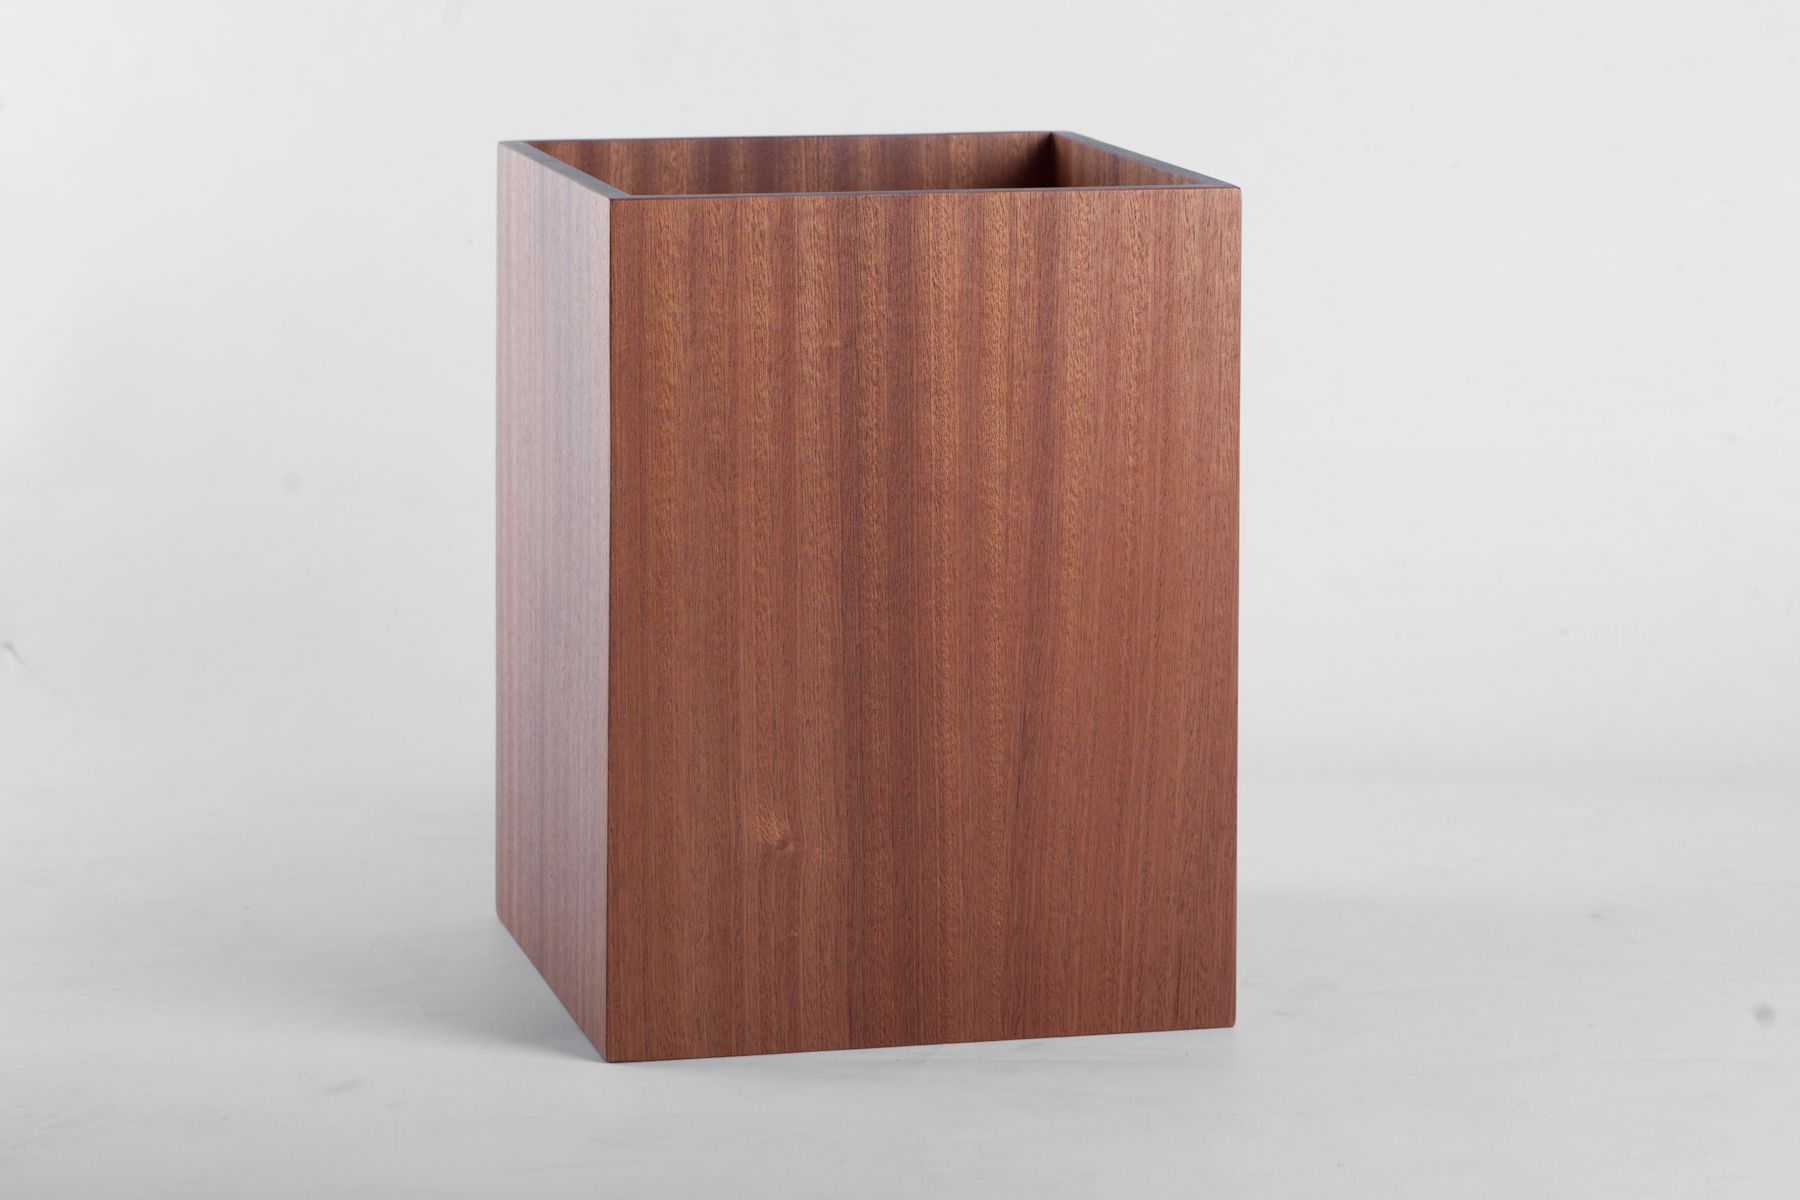 Square waste bin - our stylish bin creates the perfect and essential finishing touch to your room.  H 30cm x W 23cm x D 23cm